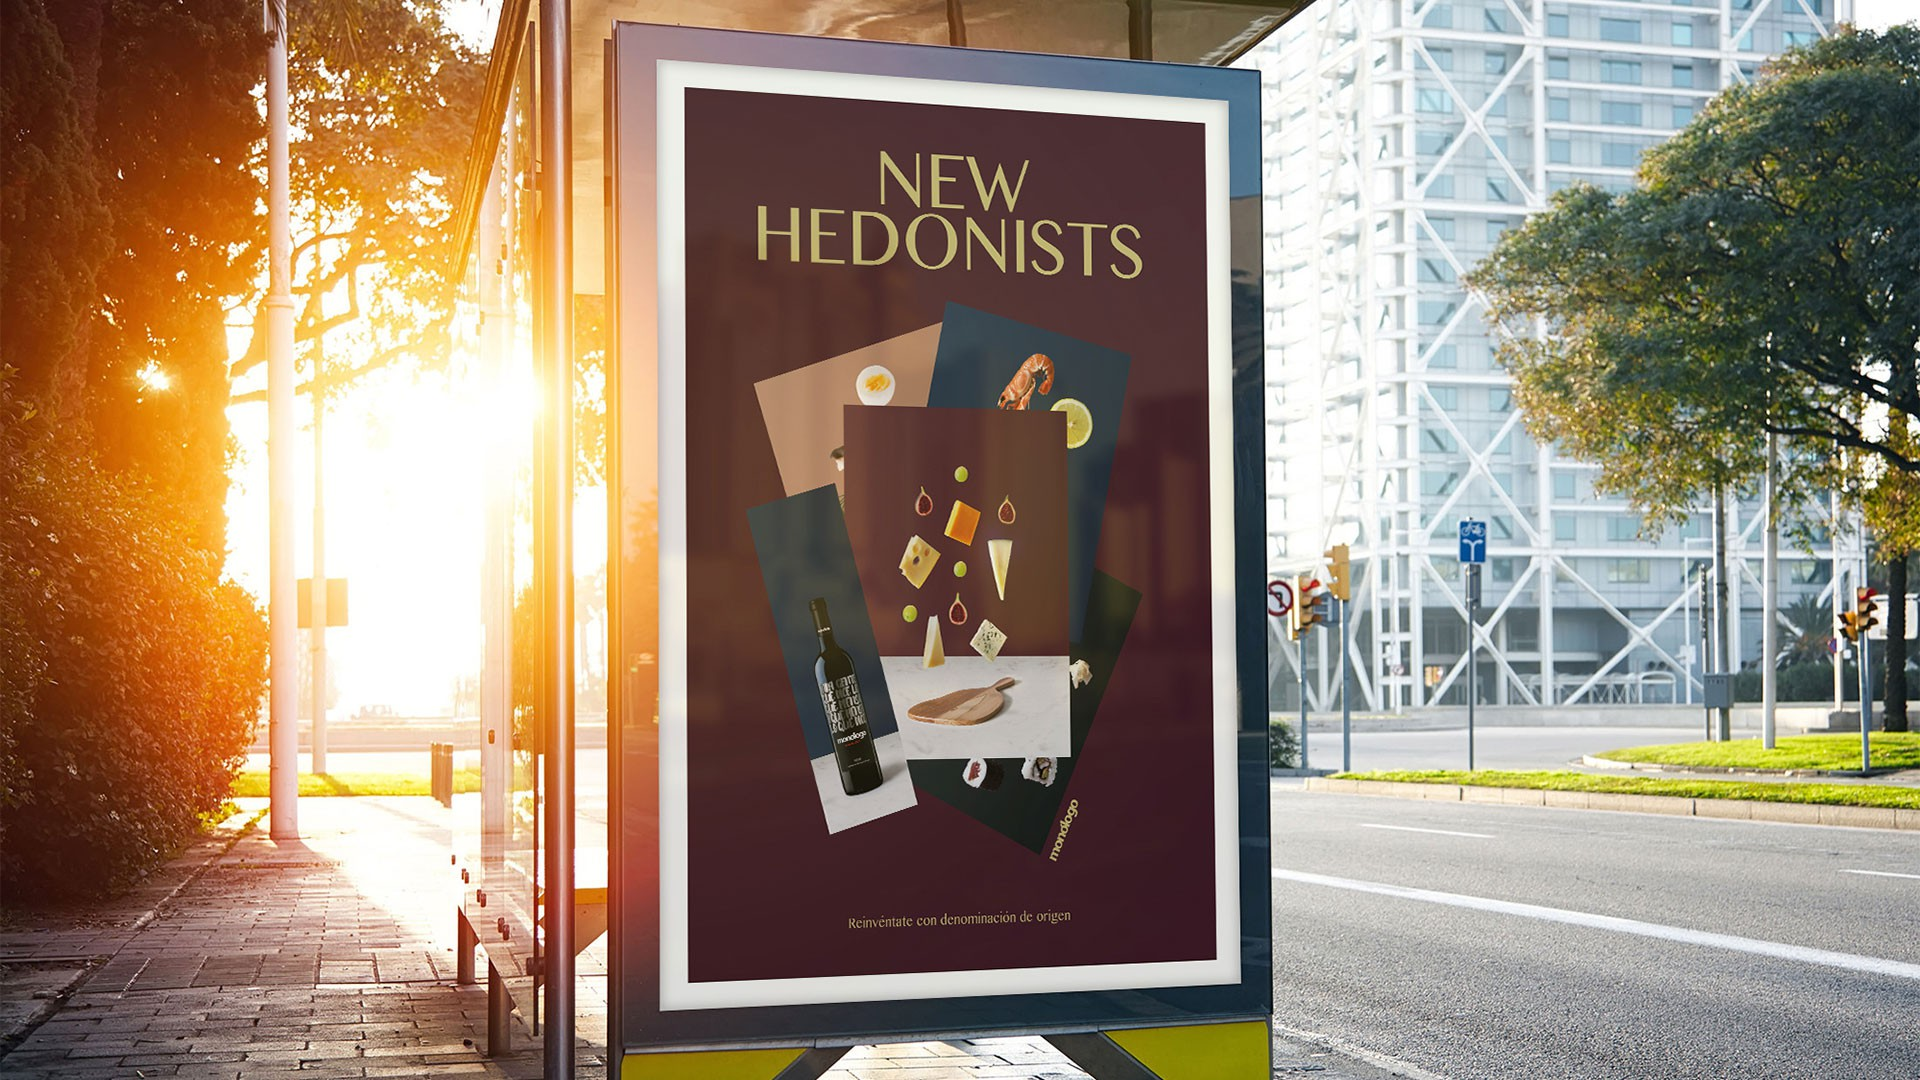 New hedonists